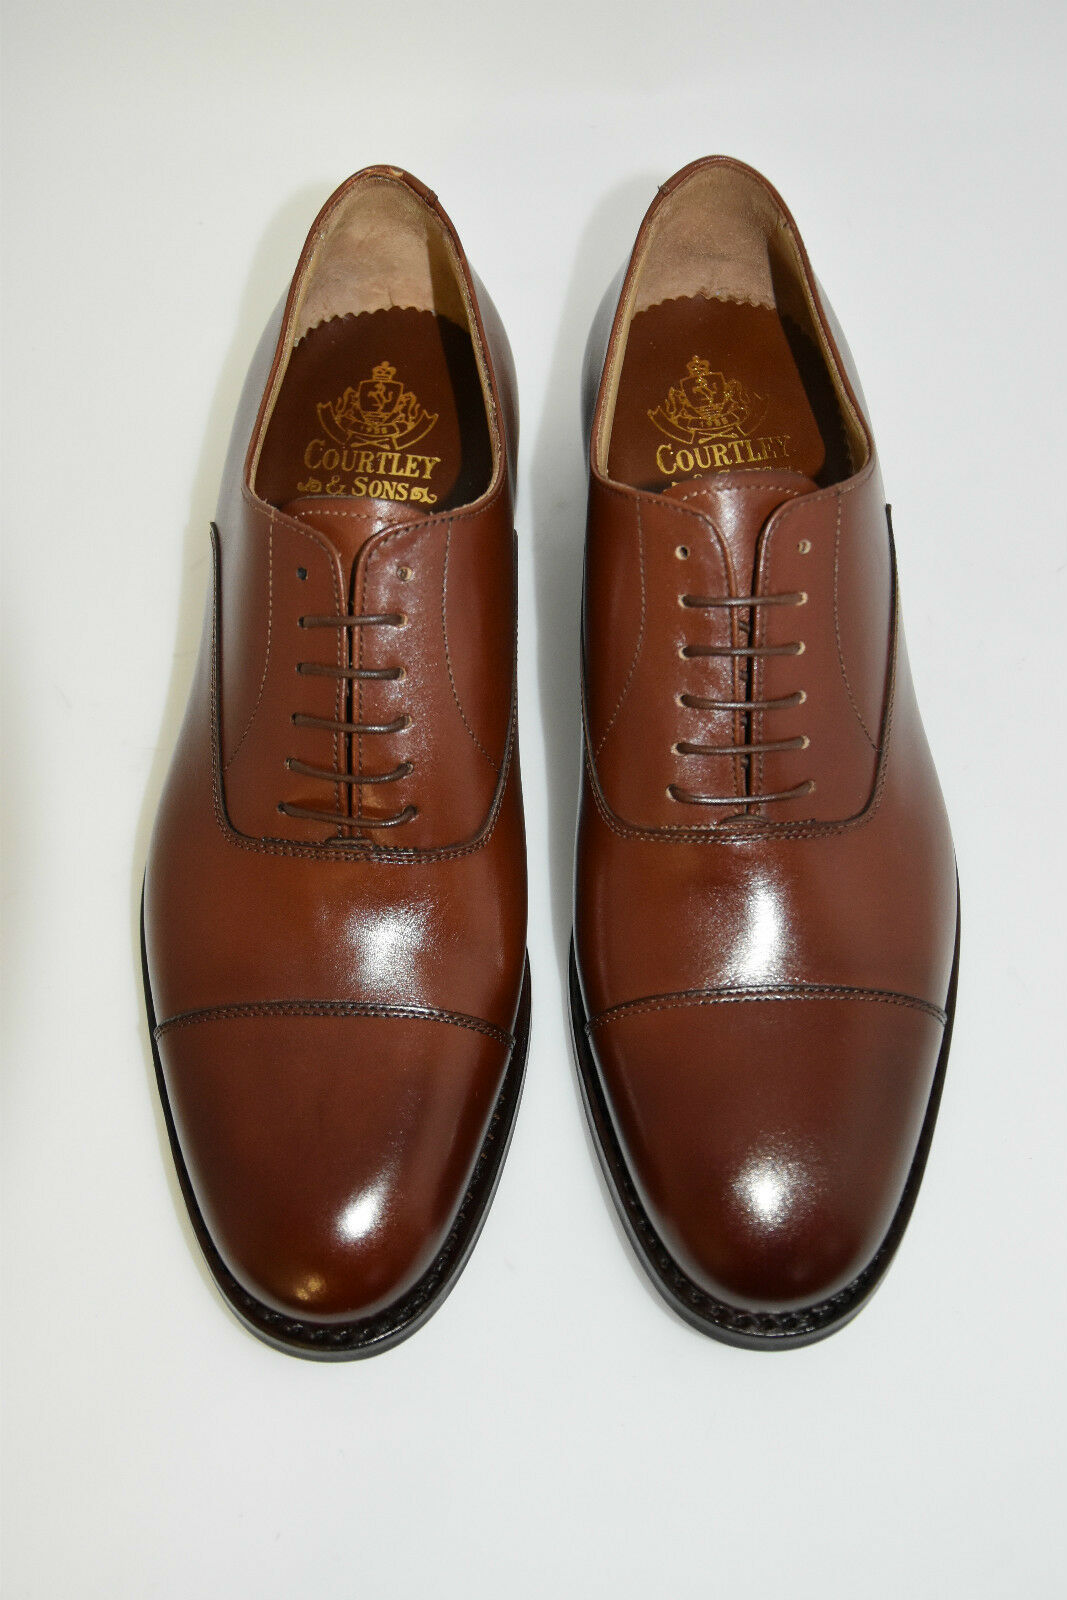 MAN-8eu-9usa-OXFORD CAPTOE-COGNAC CALF-VITELLO MARRONE-DAINITE+LEATHER MARRONE-DAINITE+LEATHER MARRONE-DAINITE+LEATHER SOLE aa68d5